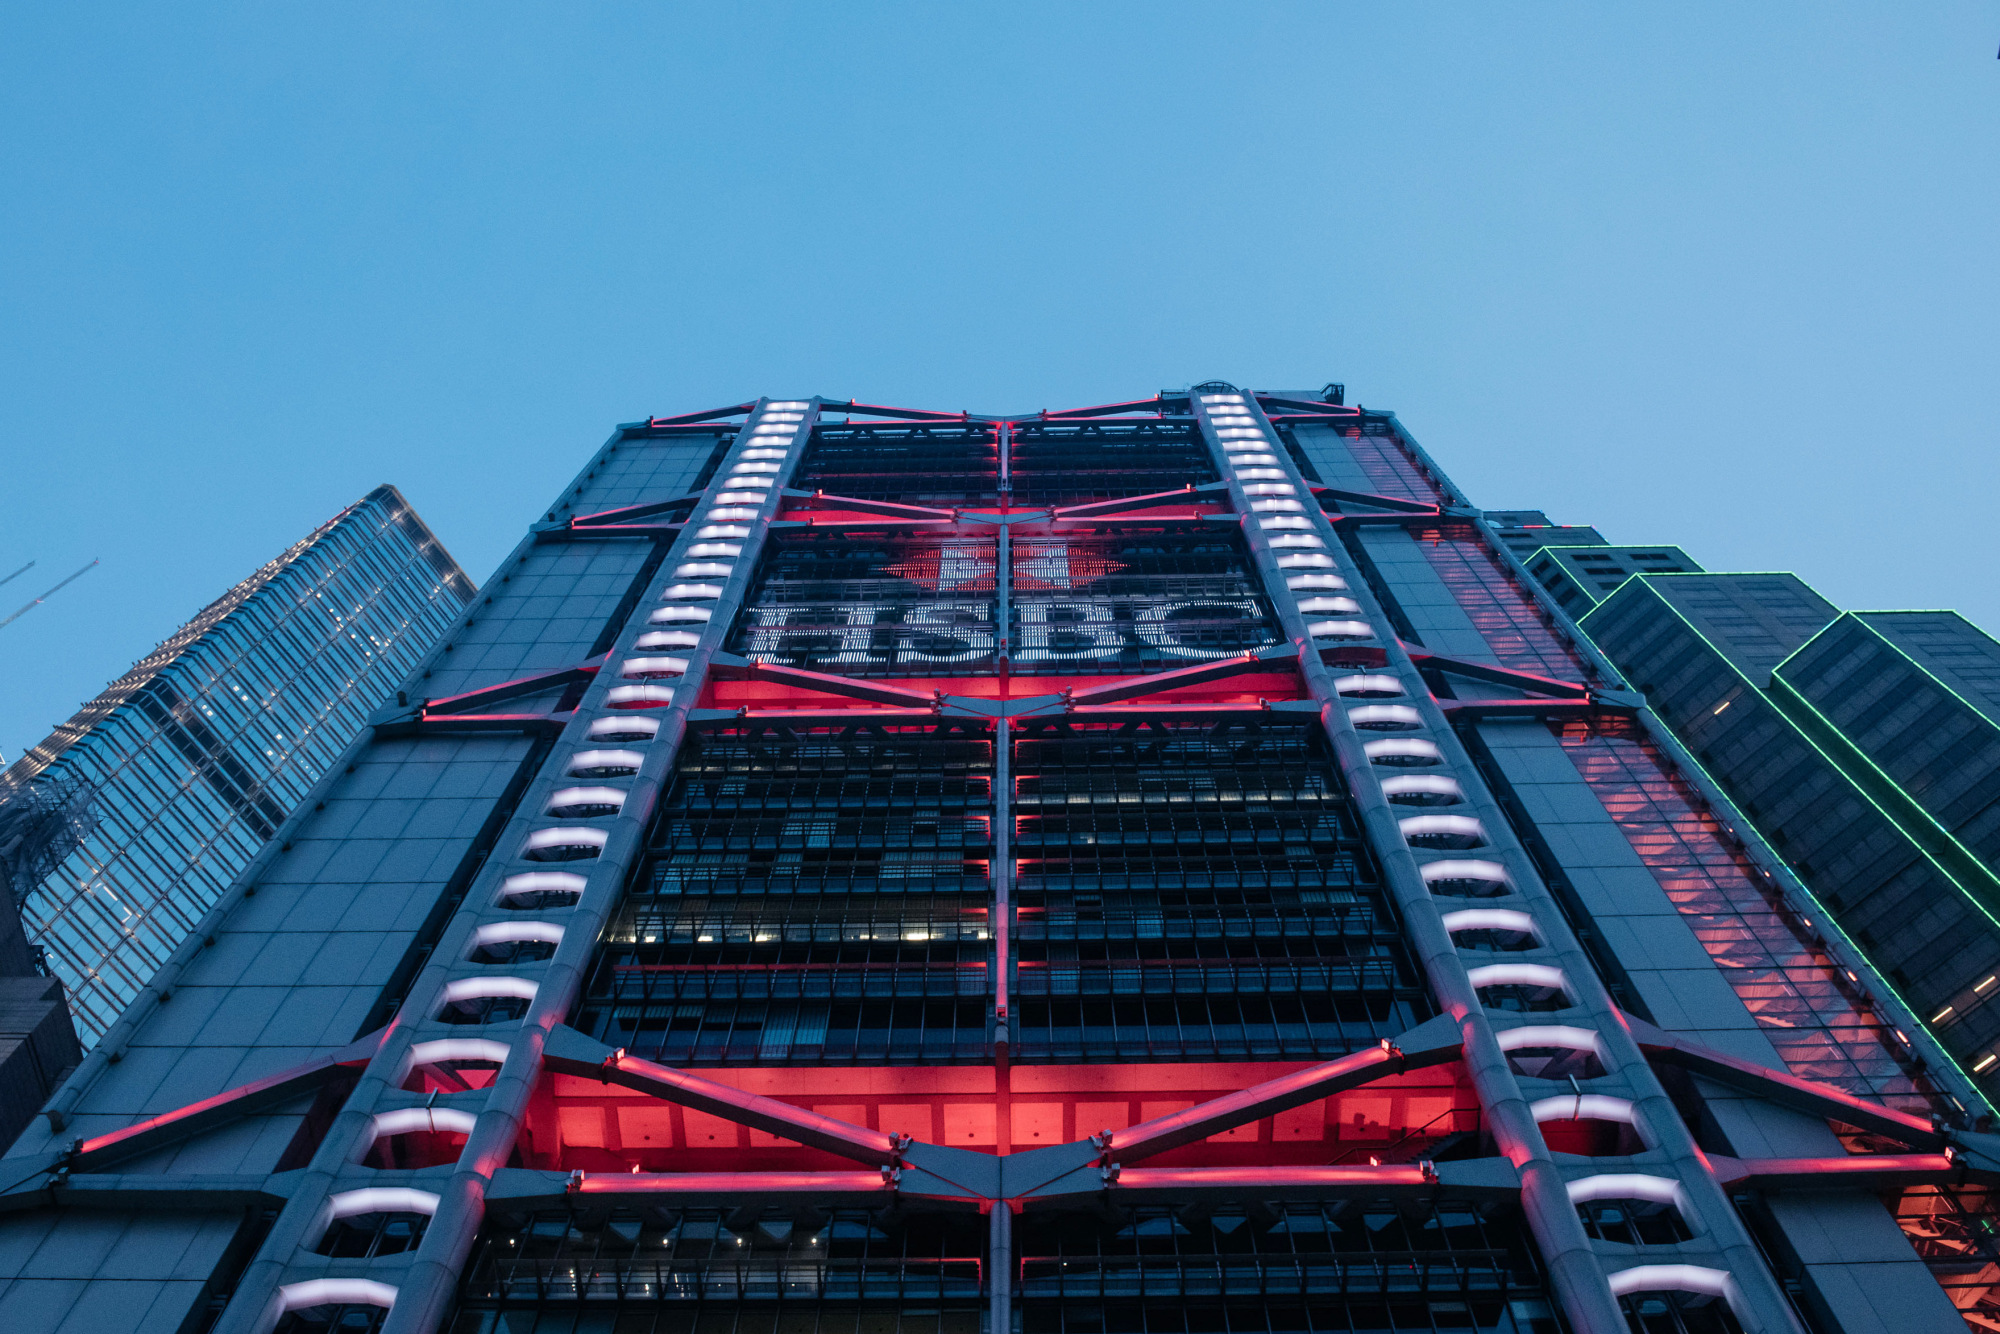 bloomberg.com - Alfred Liu - HSBC Is Making a Bet on Asia Millionaires